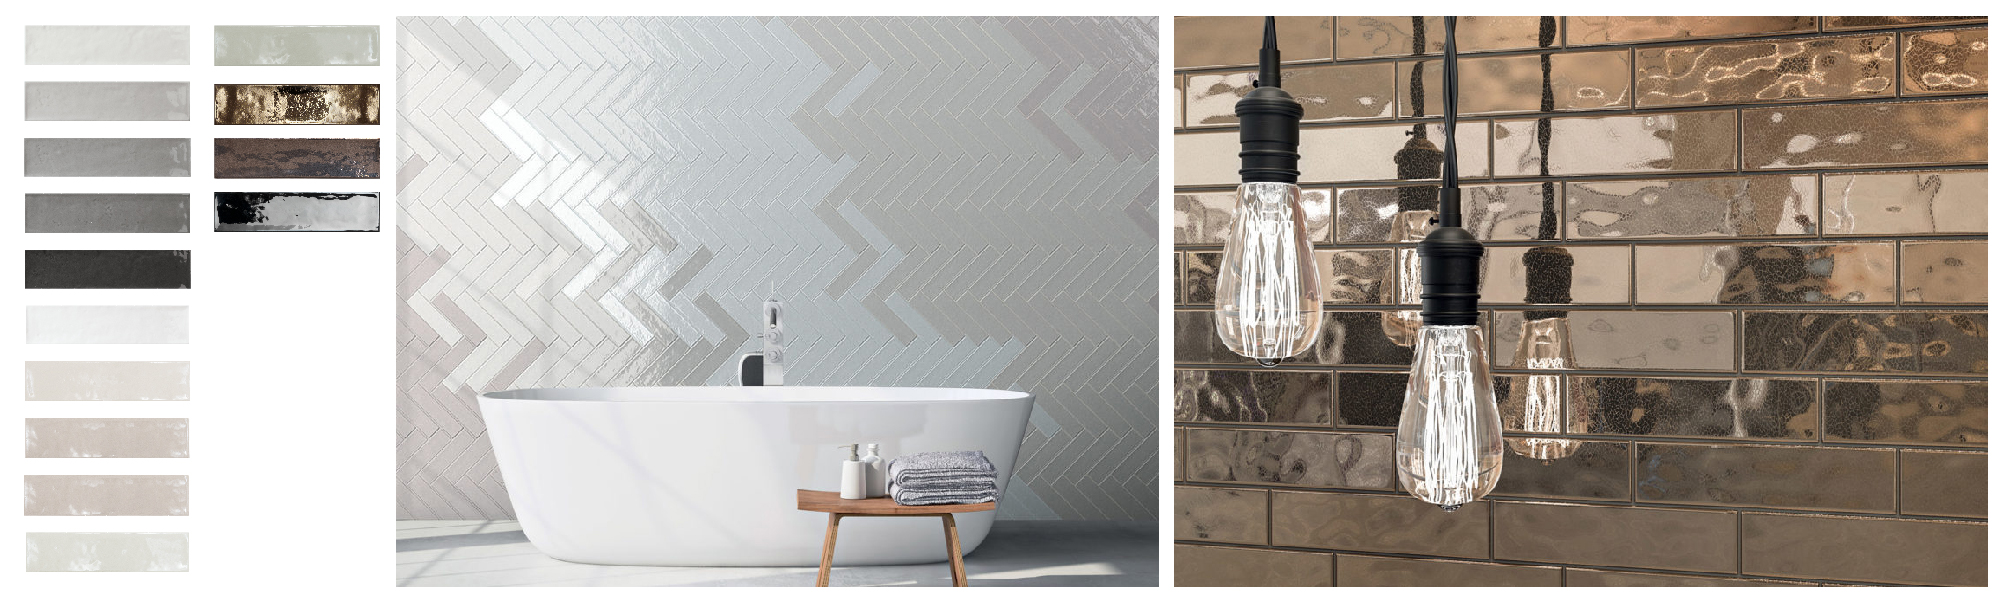 national-tile-day-koda-interiors-cromia-26-01